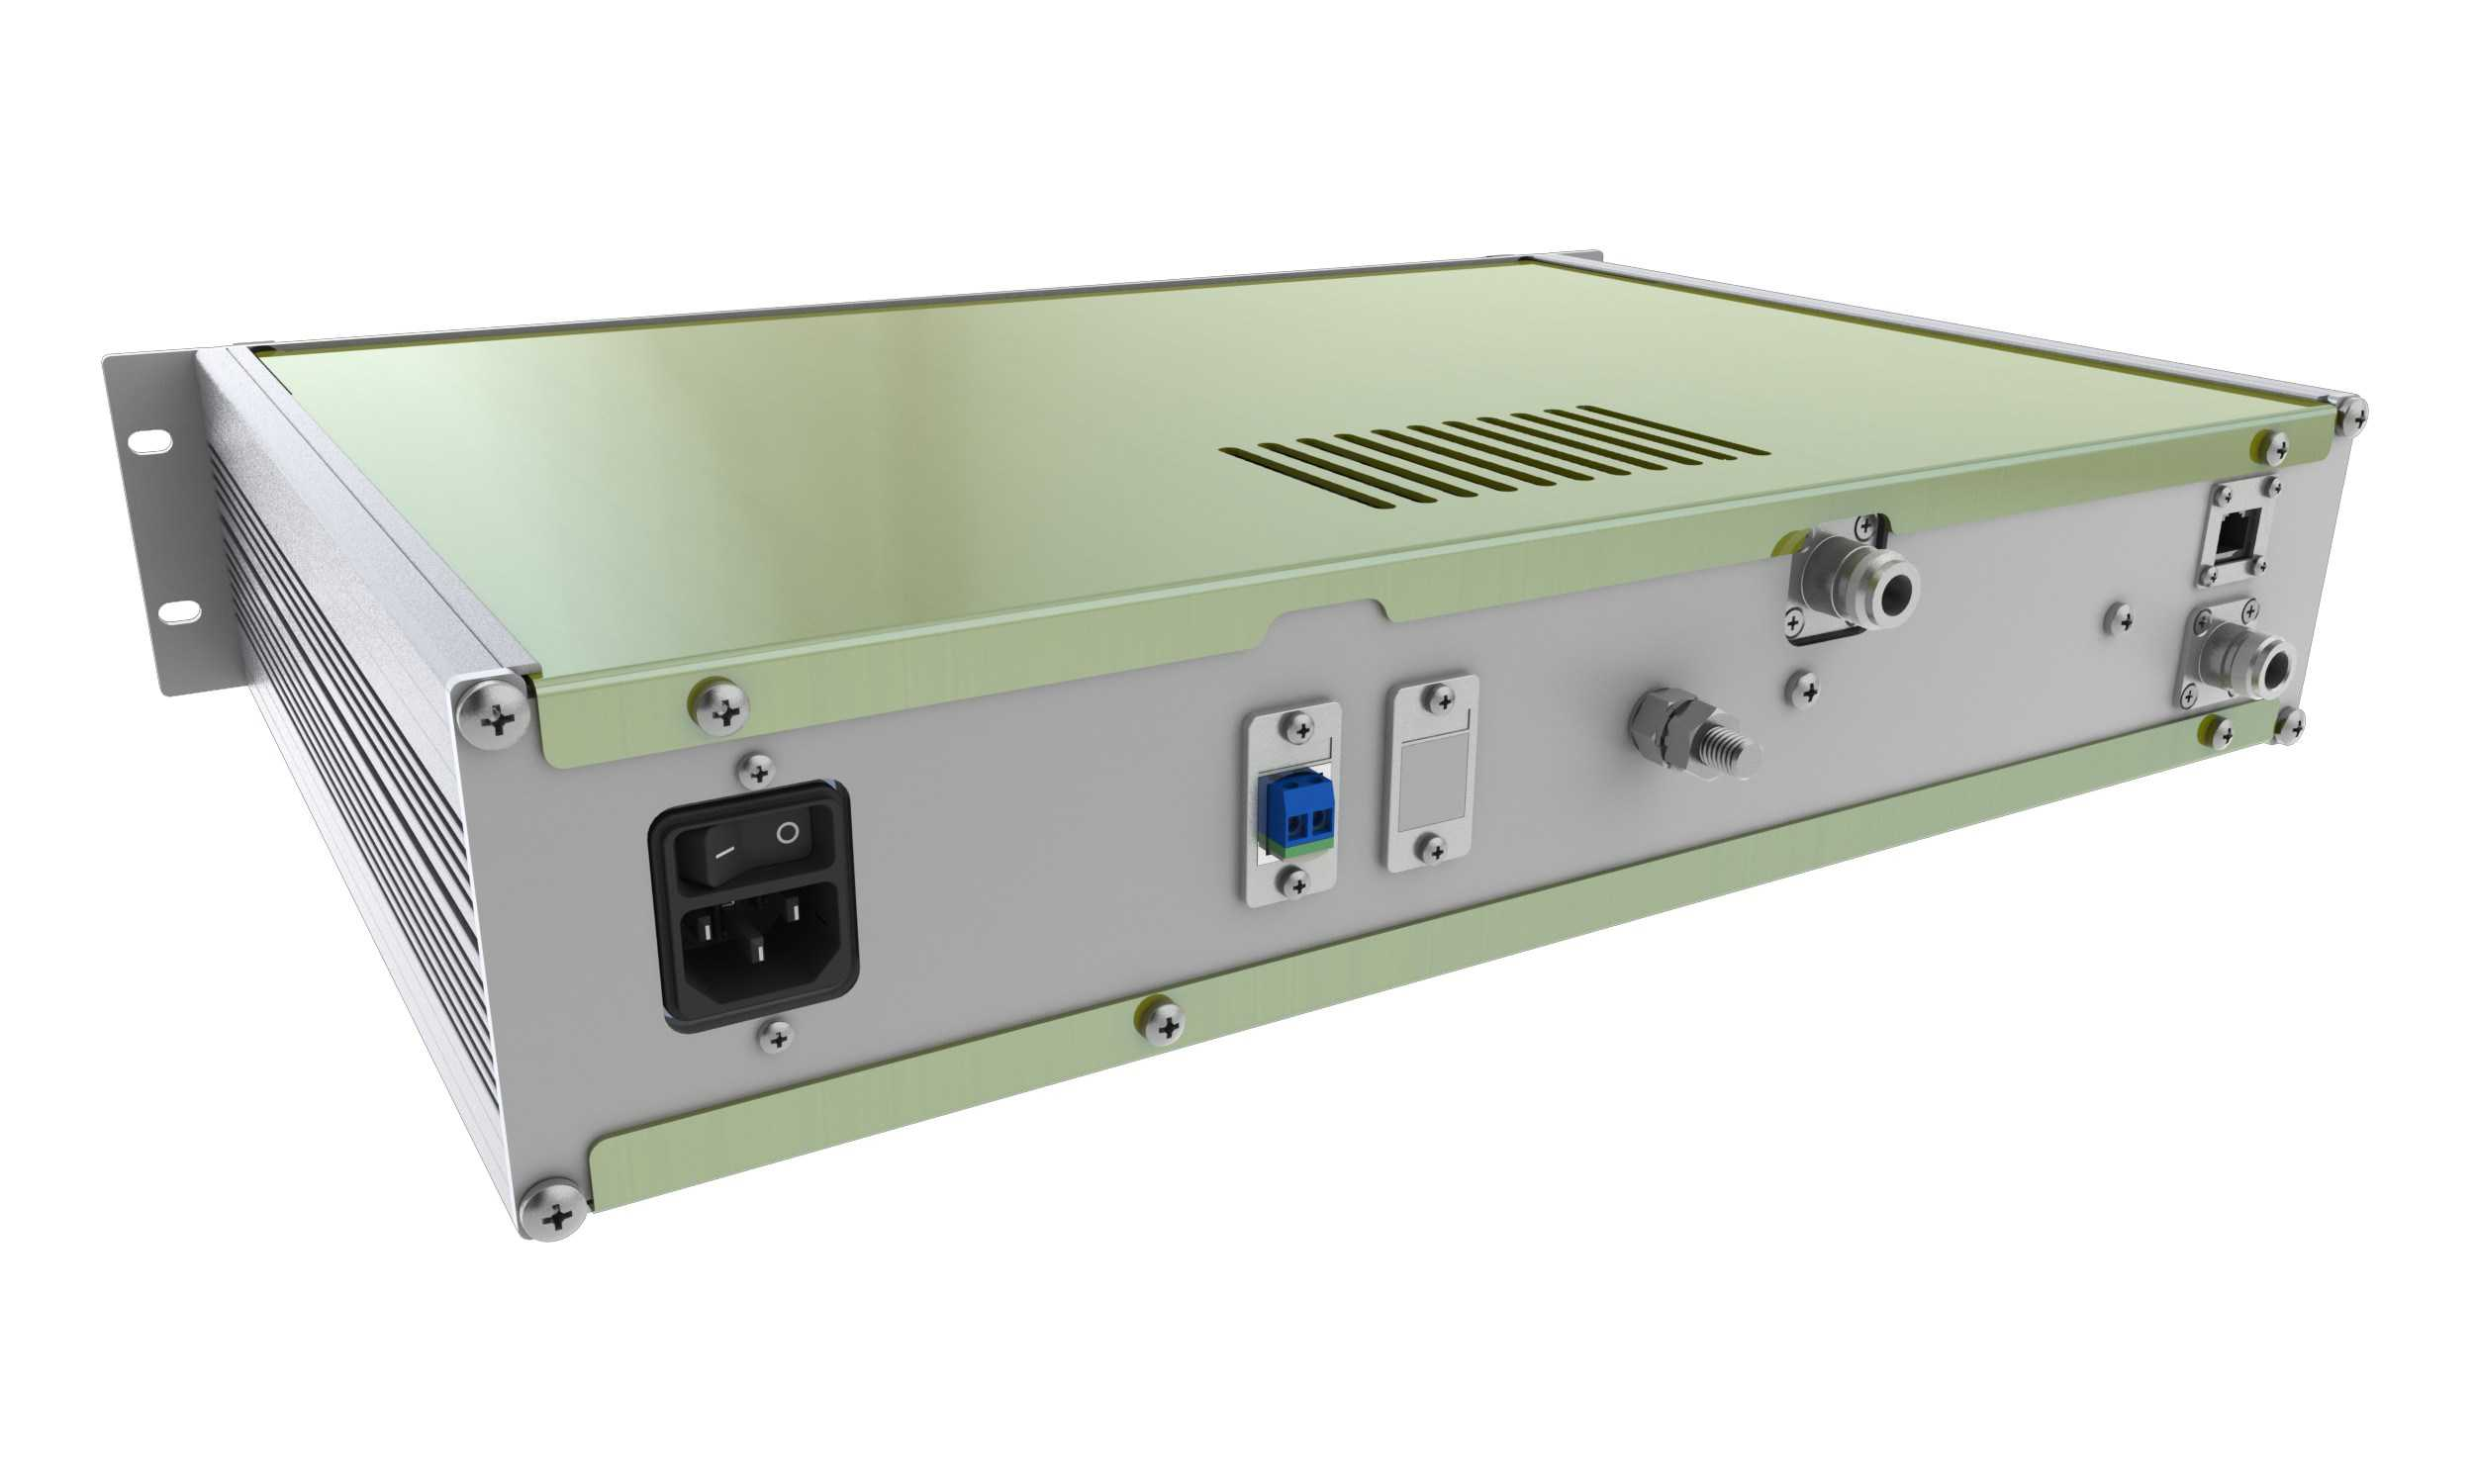 ADS-B System - 19 inch rack - rear view